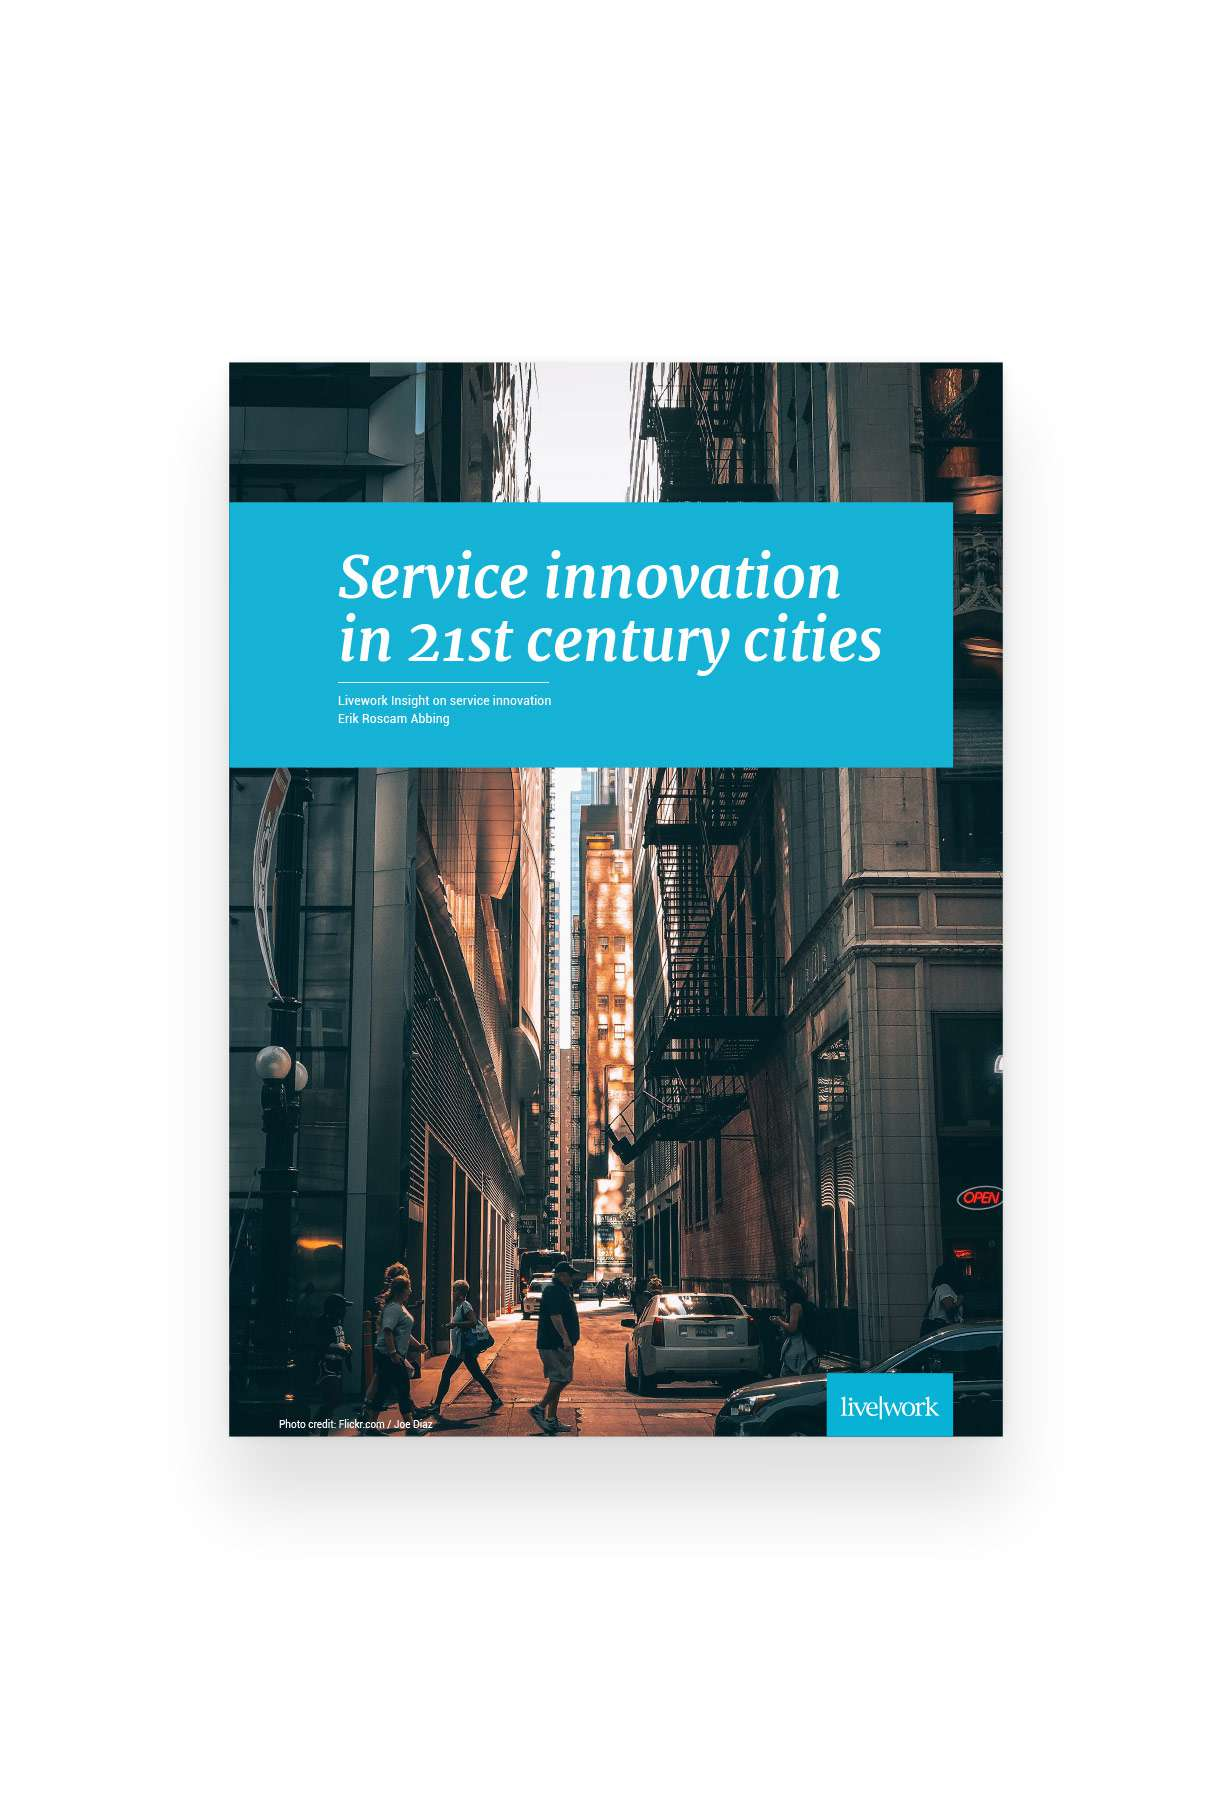 Whitepaper: Service Innovation in 21st century cities